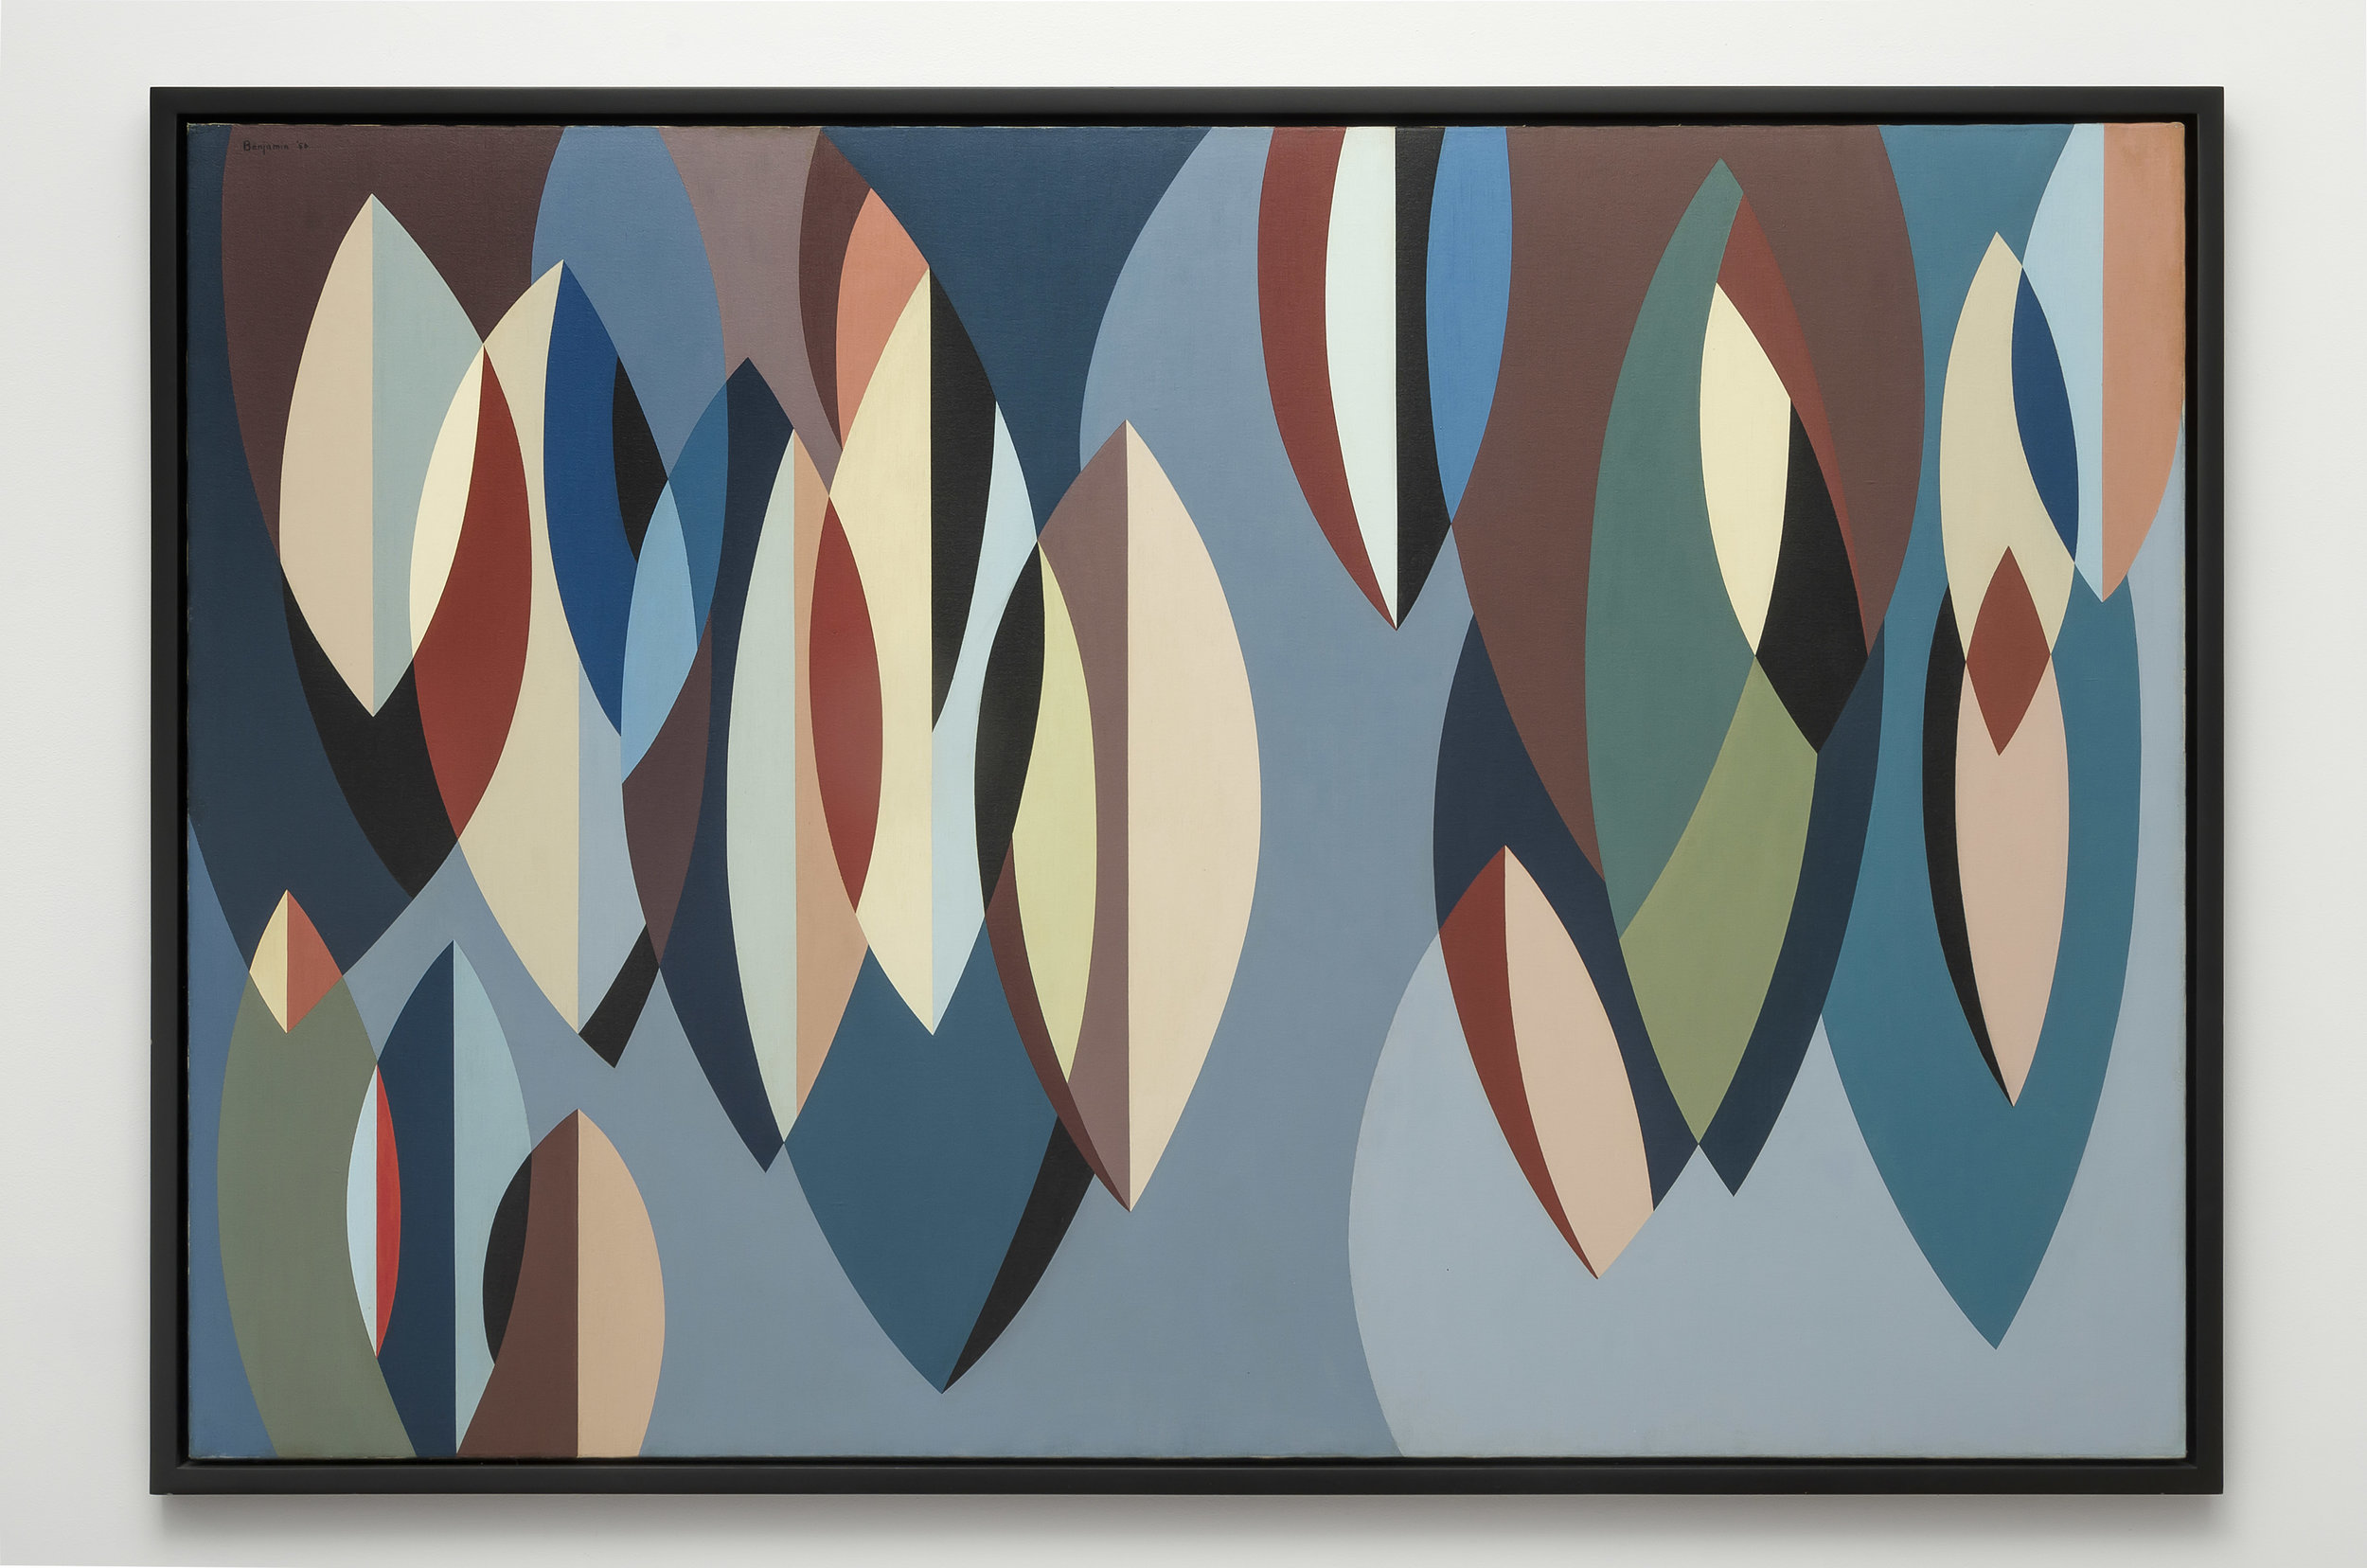 Elliptical Planes , 1956  oil on canvas 48 x 72 inches; 121.9 x 182.9 centimeters